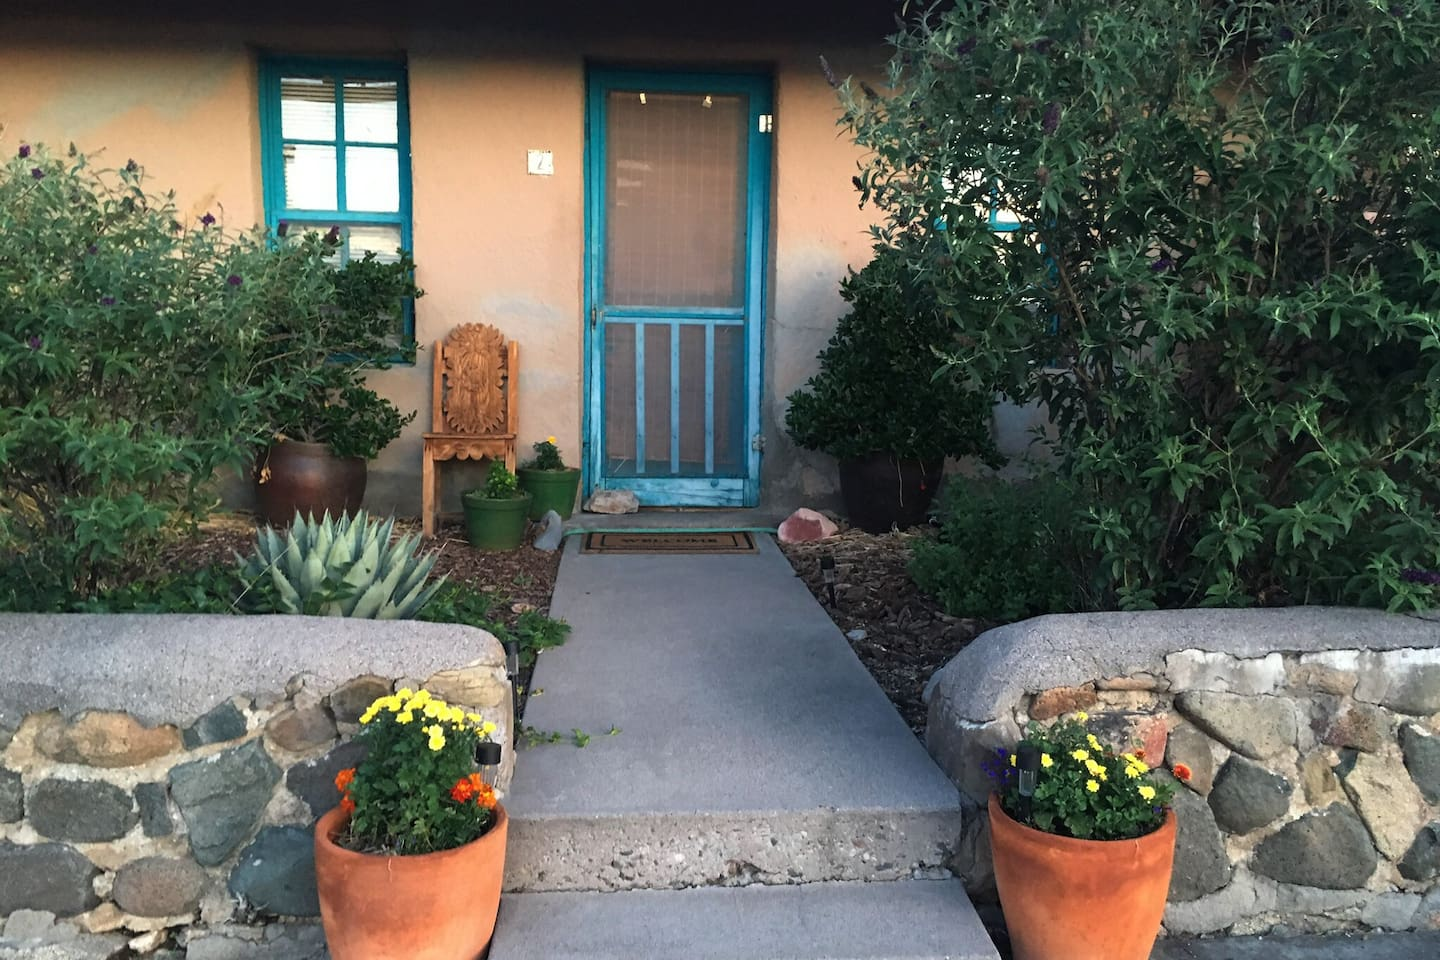 Bienvenidos, Welcome to Adobe Agave's Apt. 2!  Our gardens are planted with lots of native and habitat plantings to attract hummingbirds and butterfly bushes to attract ....